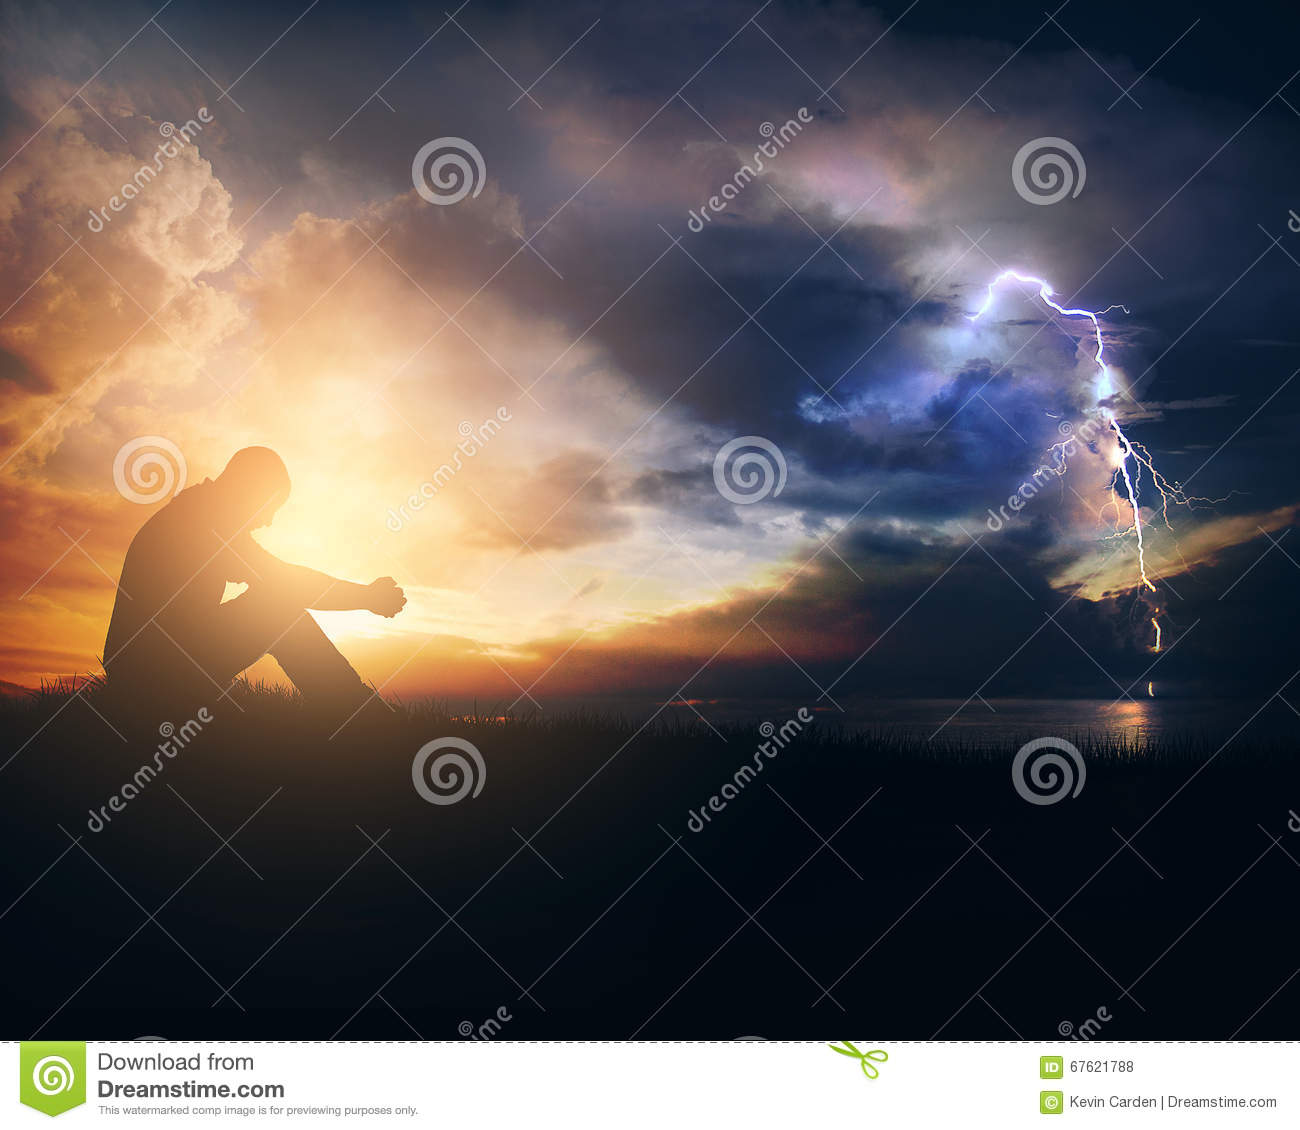 Silhouette of the holy cross on background of storm clouds stock - Man Storm Sunrise Silhouette Sunset Christian Evening Clouds